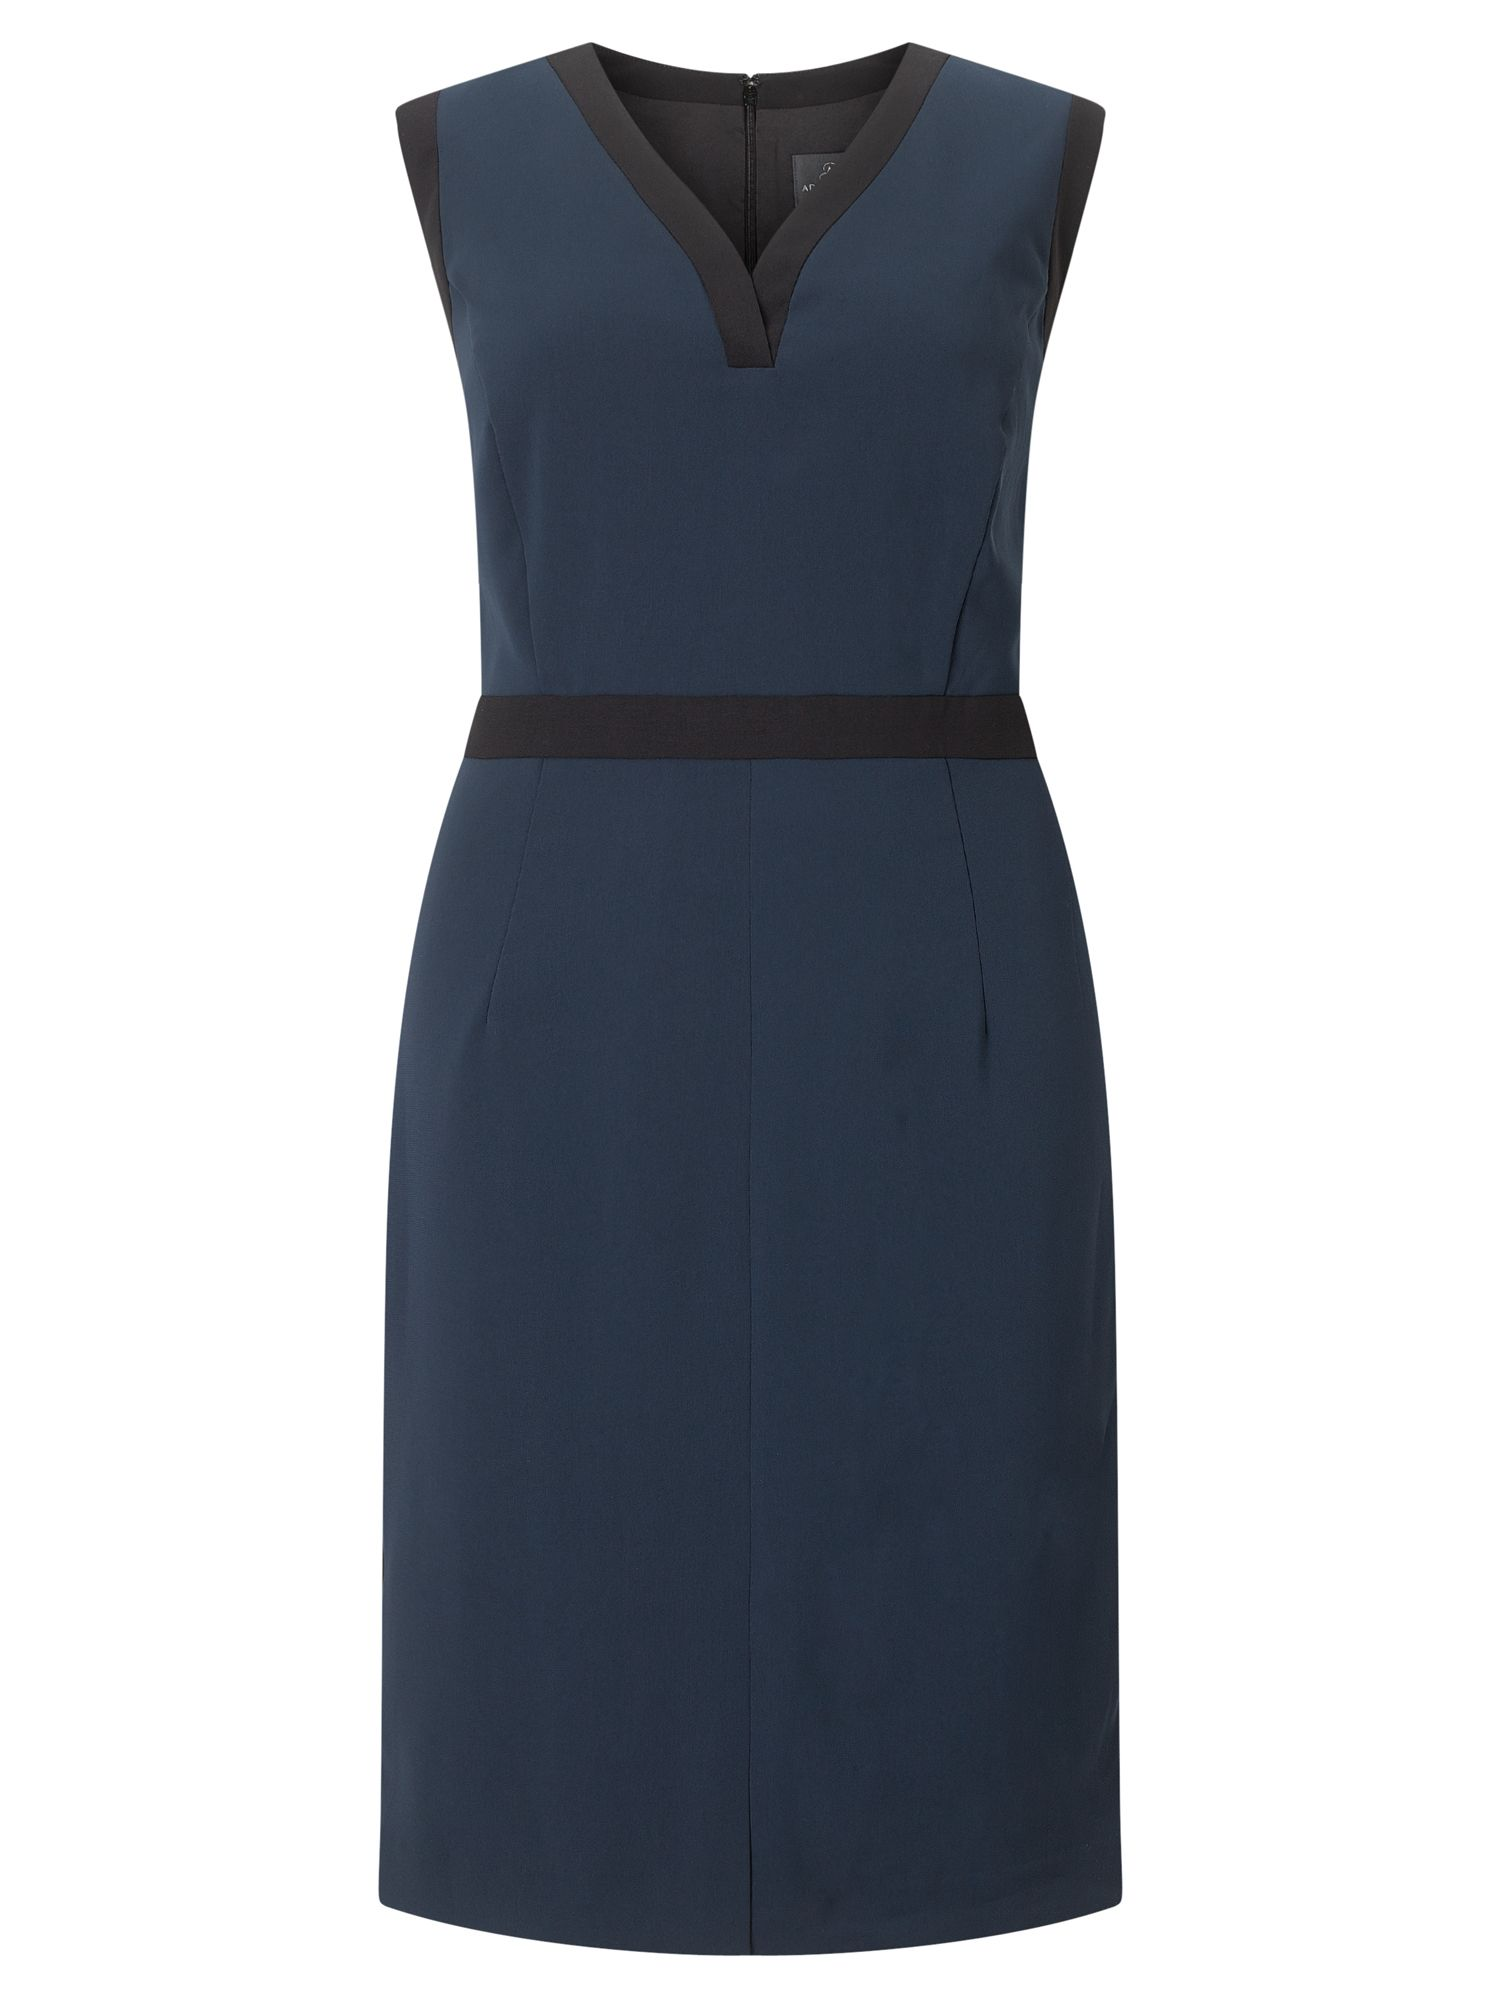 Adrianna Papell Colour block dress, Blue